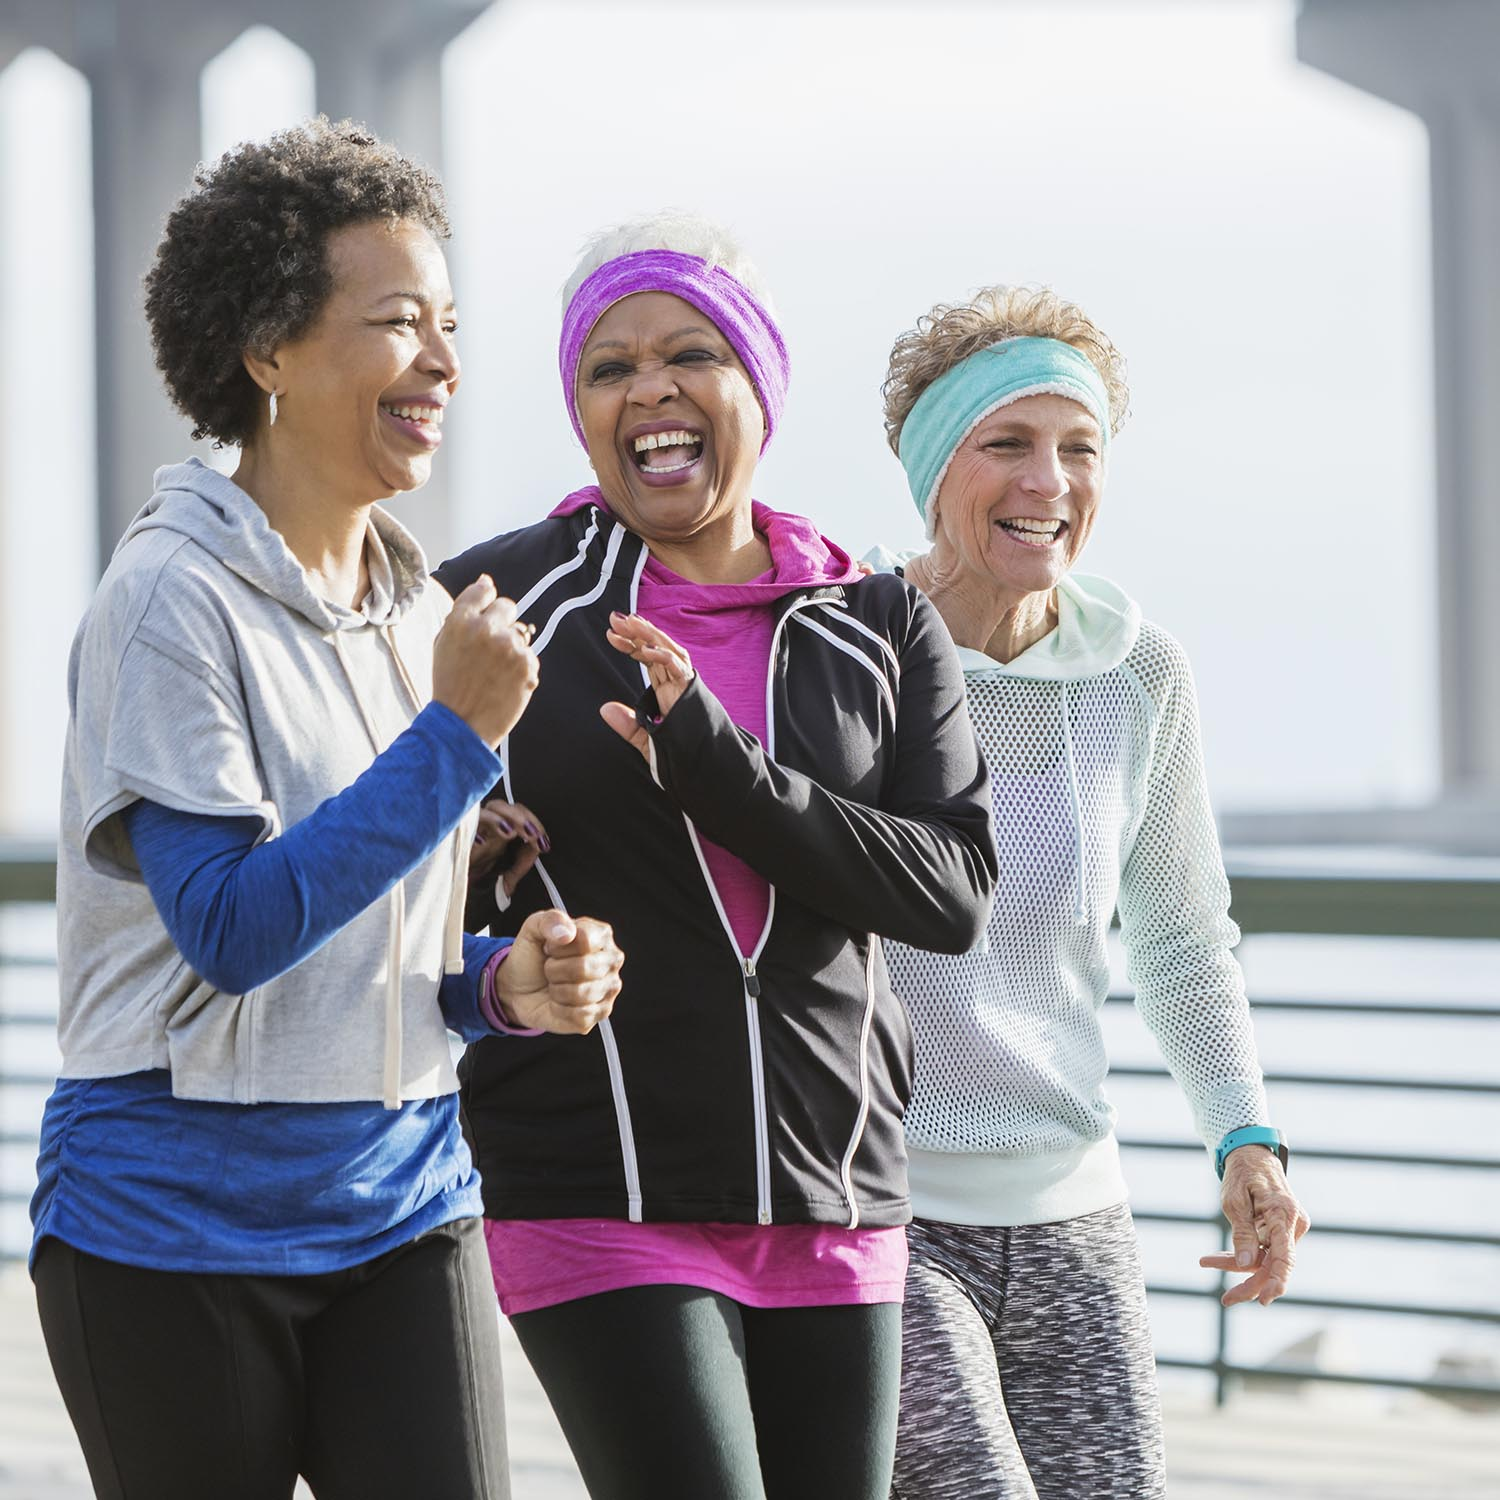 Three multi-ethnic women exercising together, power walking side by side on a city waterfront. The African-American woman with black hair is in her 50s. Her friends are senior women in their 60s.